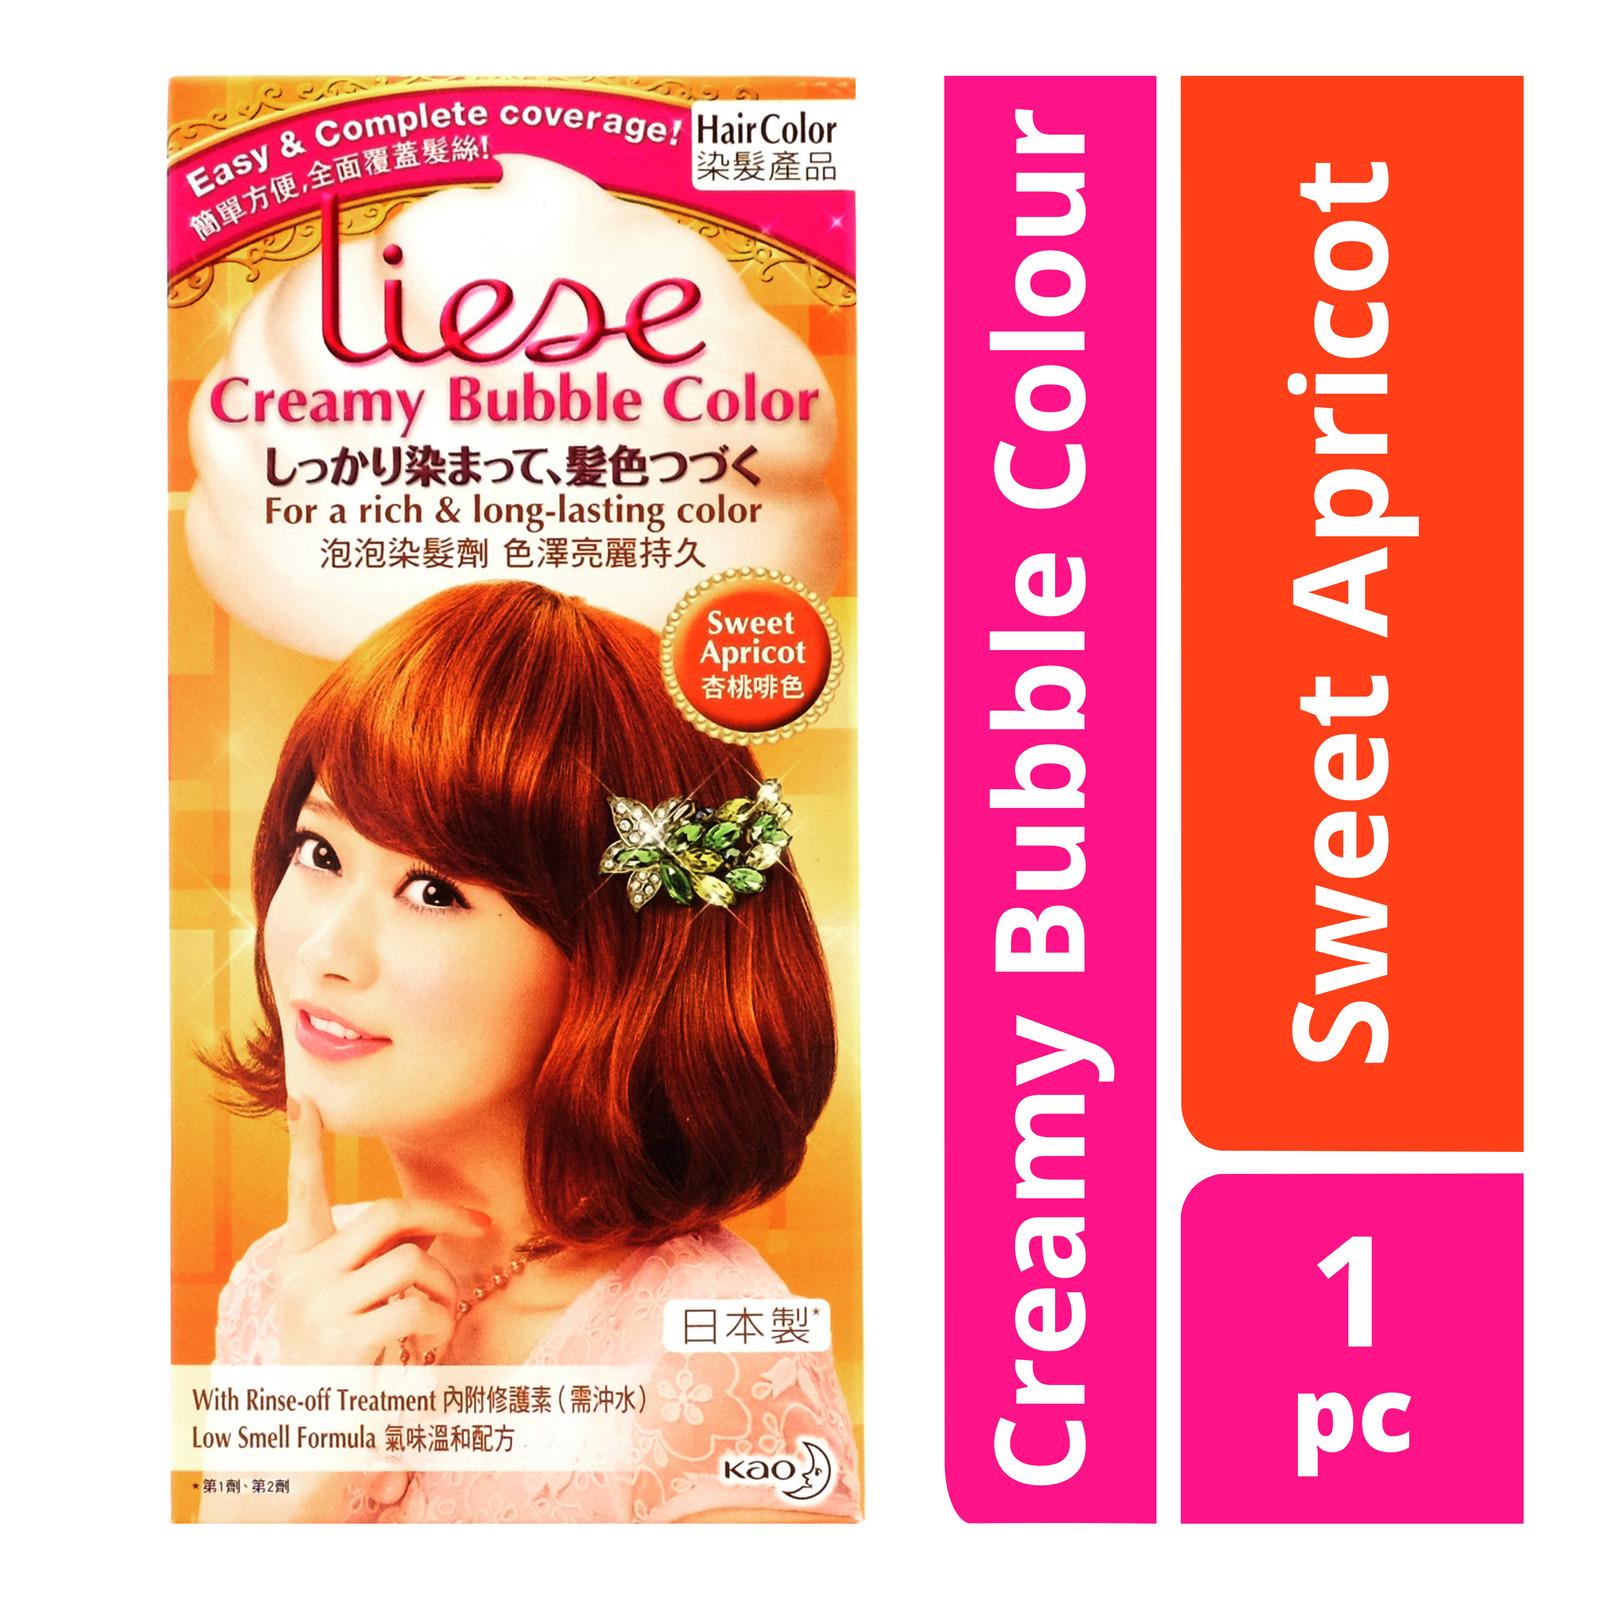 Liese Creamy Bubble Hair Colour - Sweet Apricot